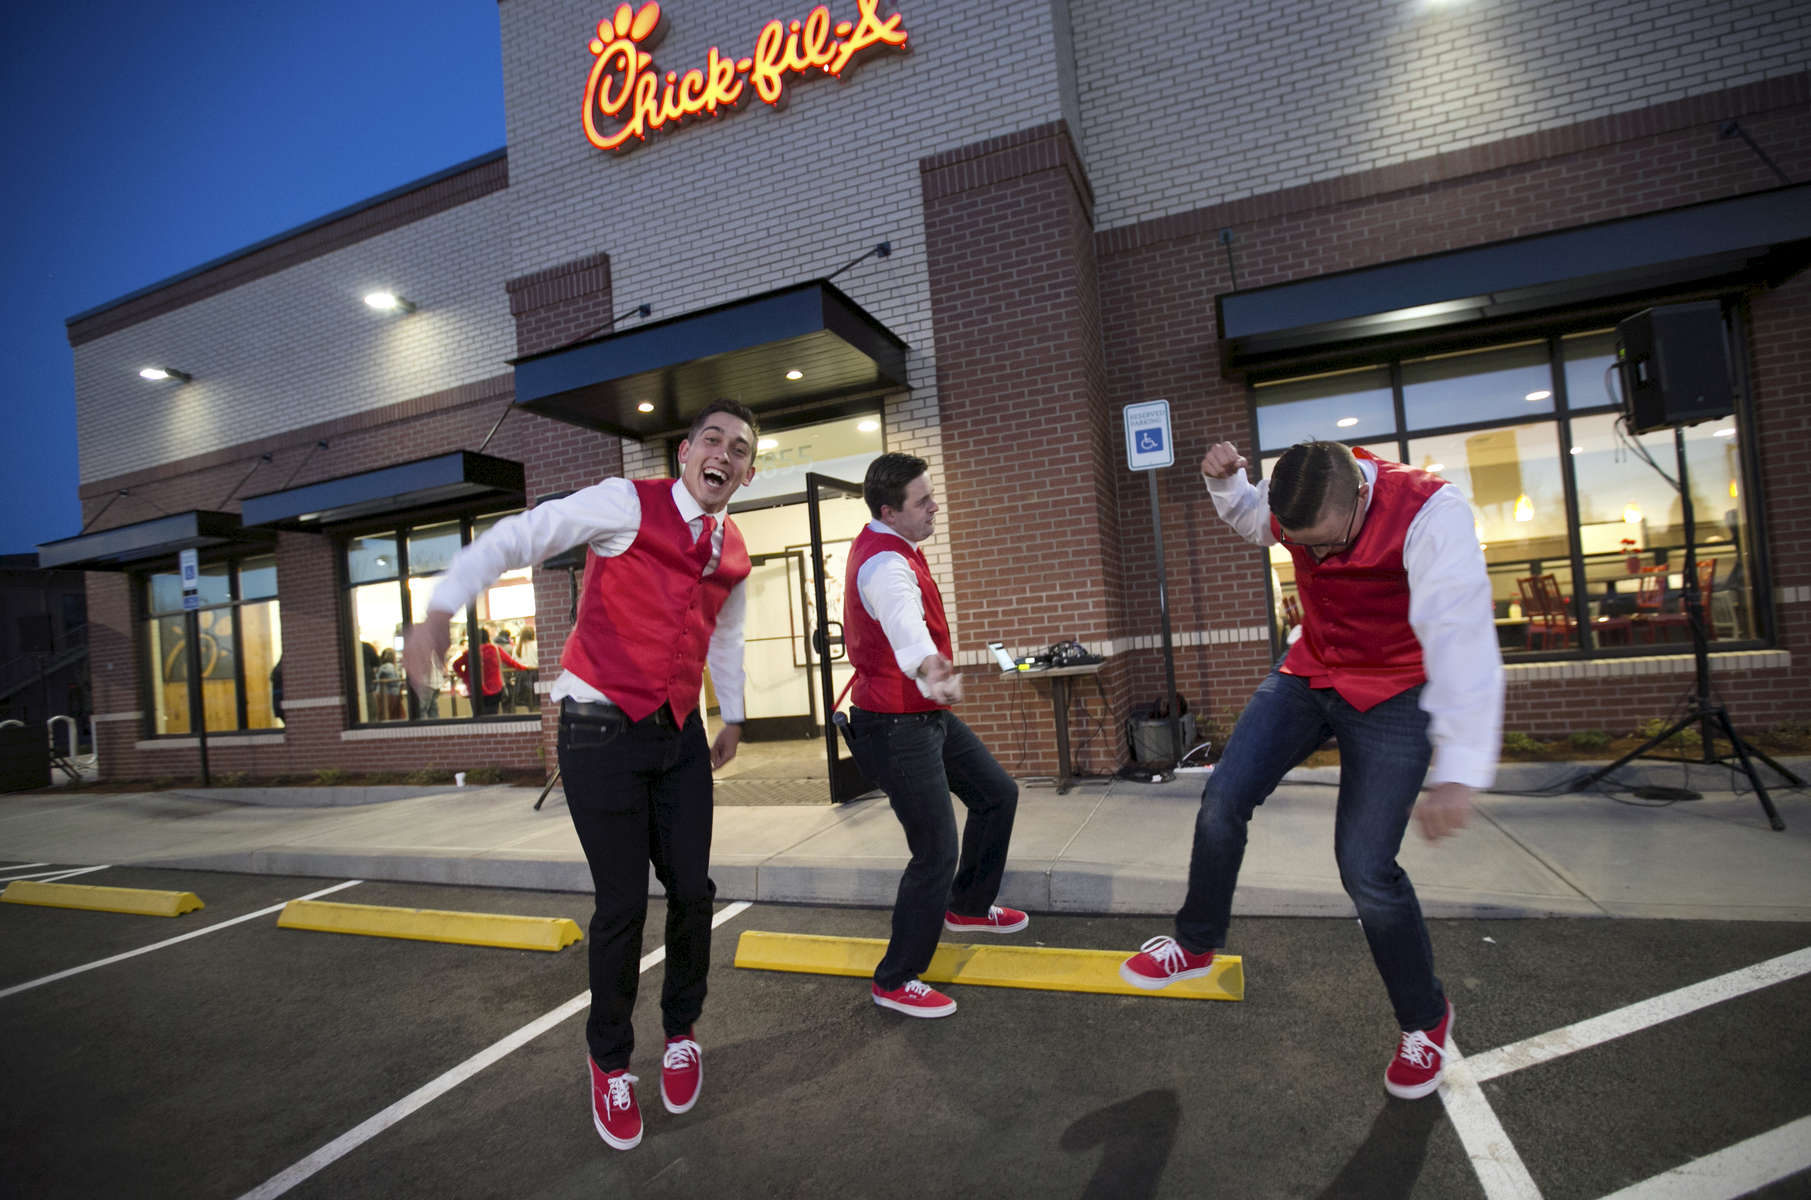 Roman Kotowski, Matt Peele and Chris Rich celebrate the opening of Oregon's first Chick-fil-A in Hillsboro.